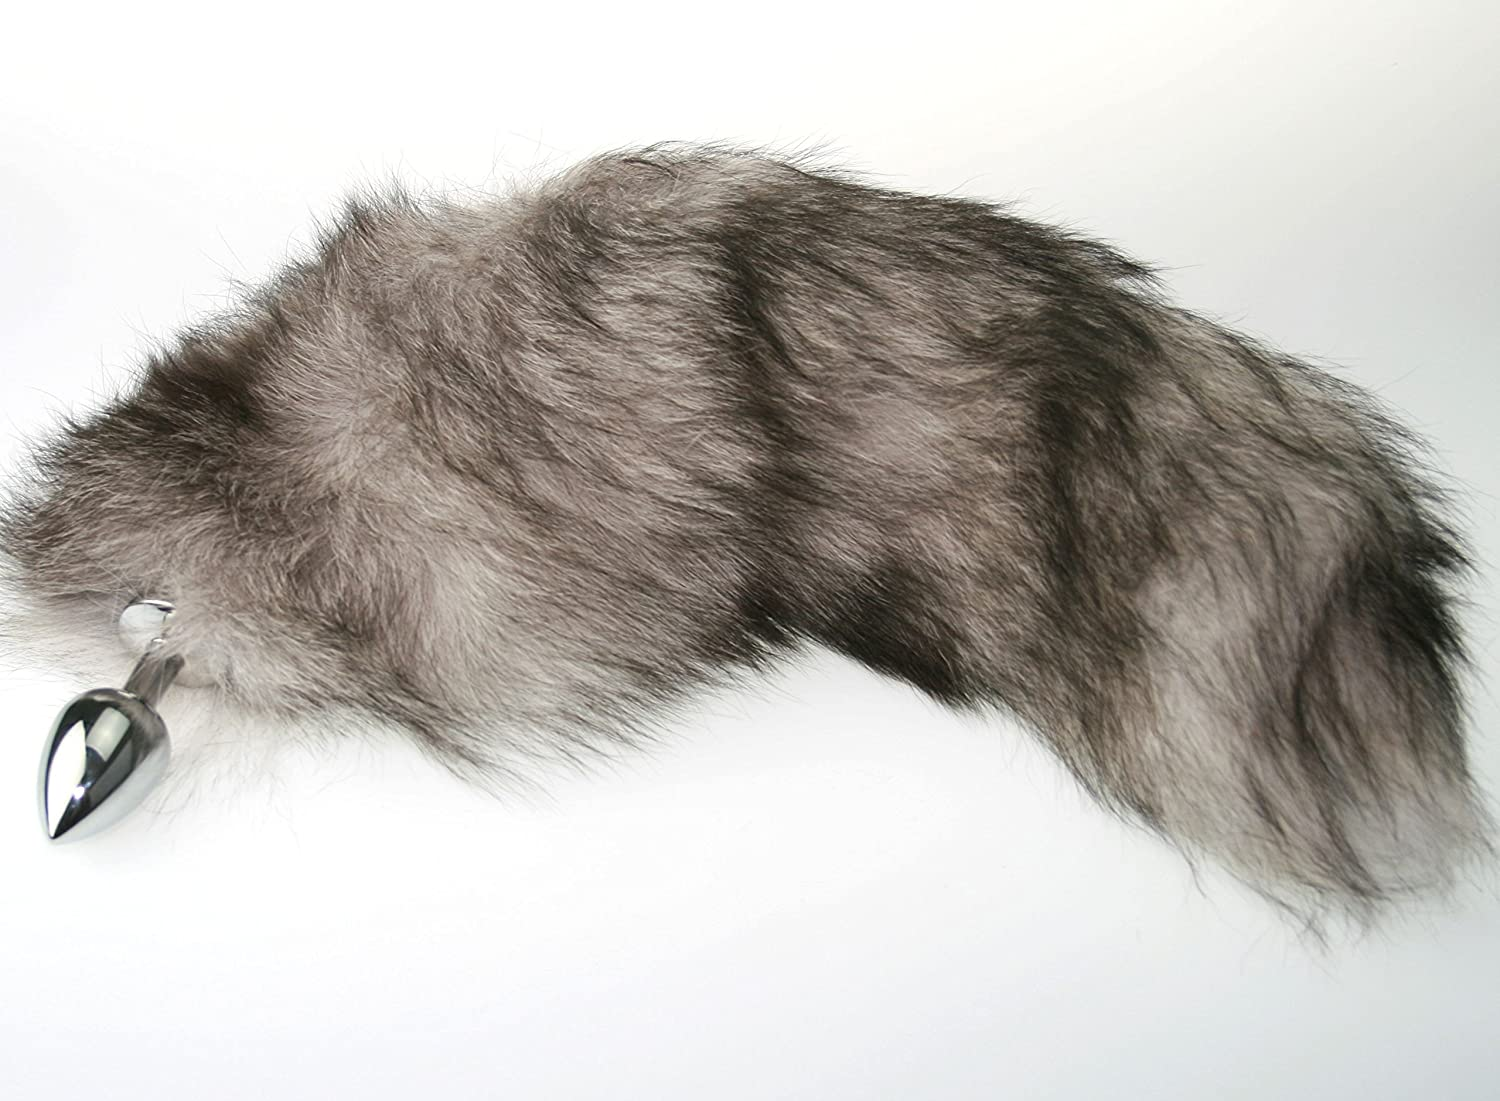 Amazon.com: Silver Real Fur Fox Tail with Small Butt Plug for BDSM Bondage  Fetish Cosplay by The Kink Factory USA: Health & Personal Care